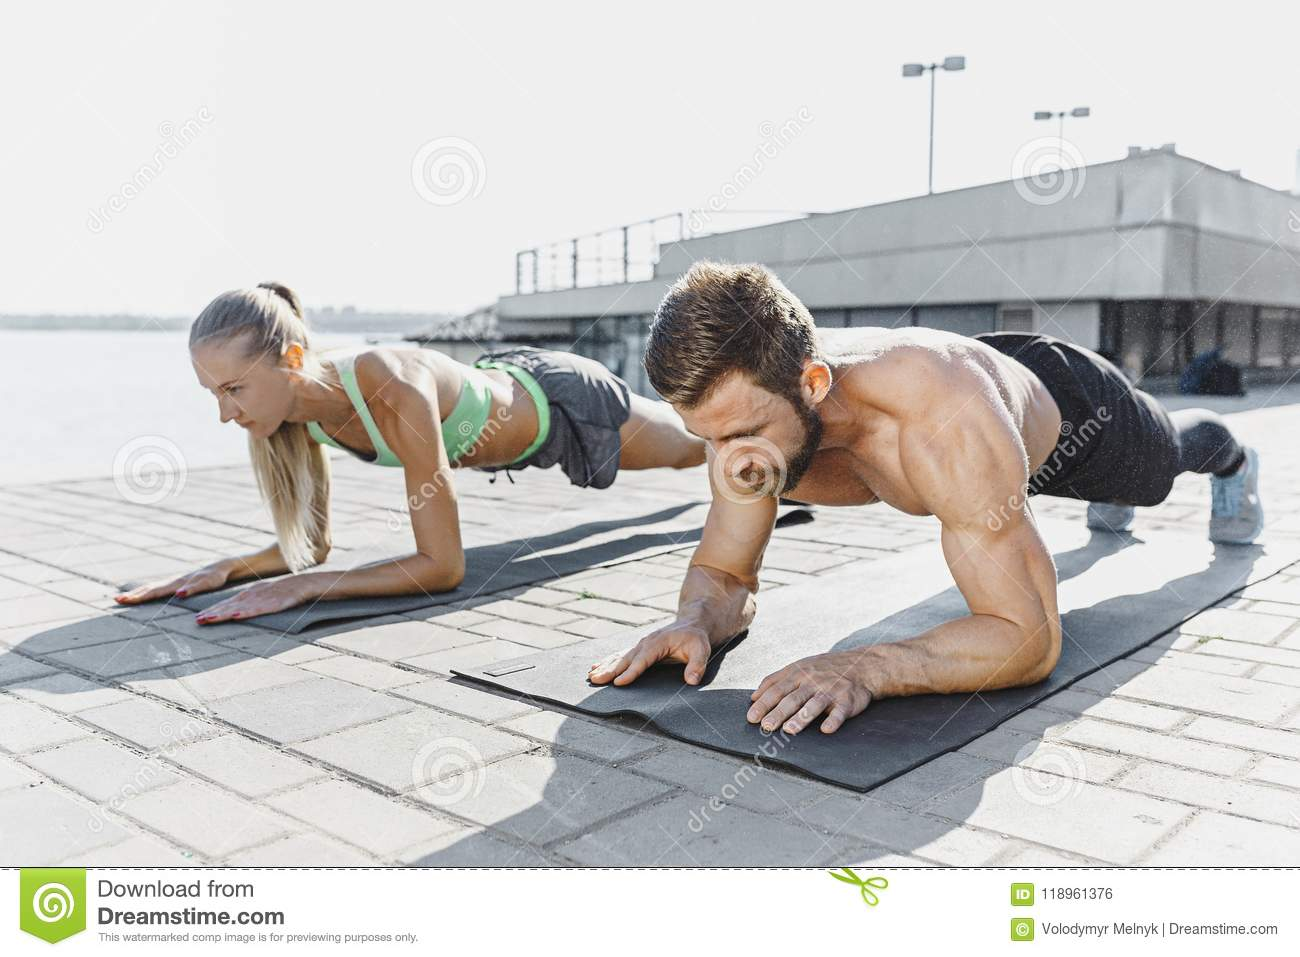 Exercises for the press: male and female